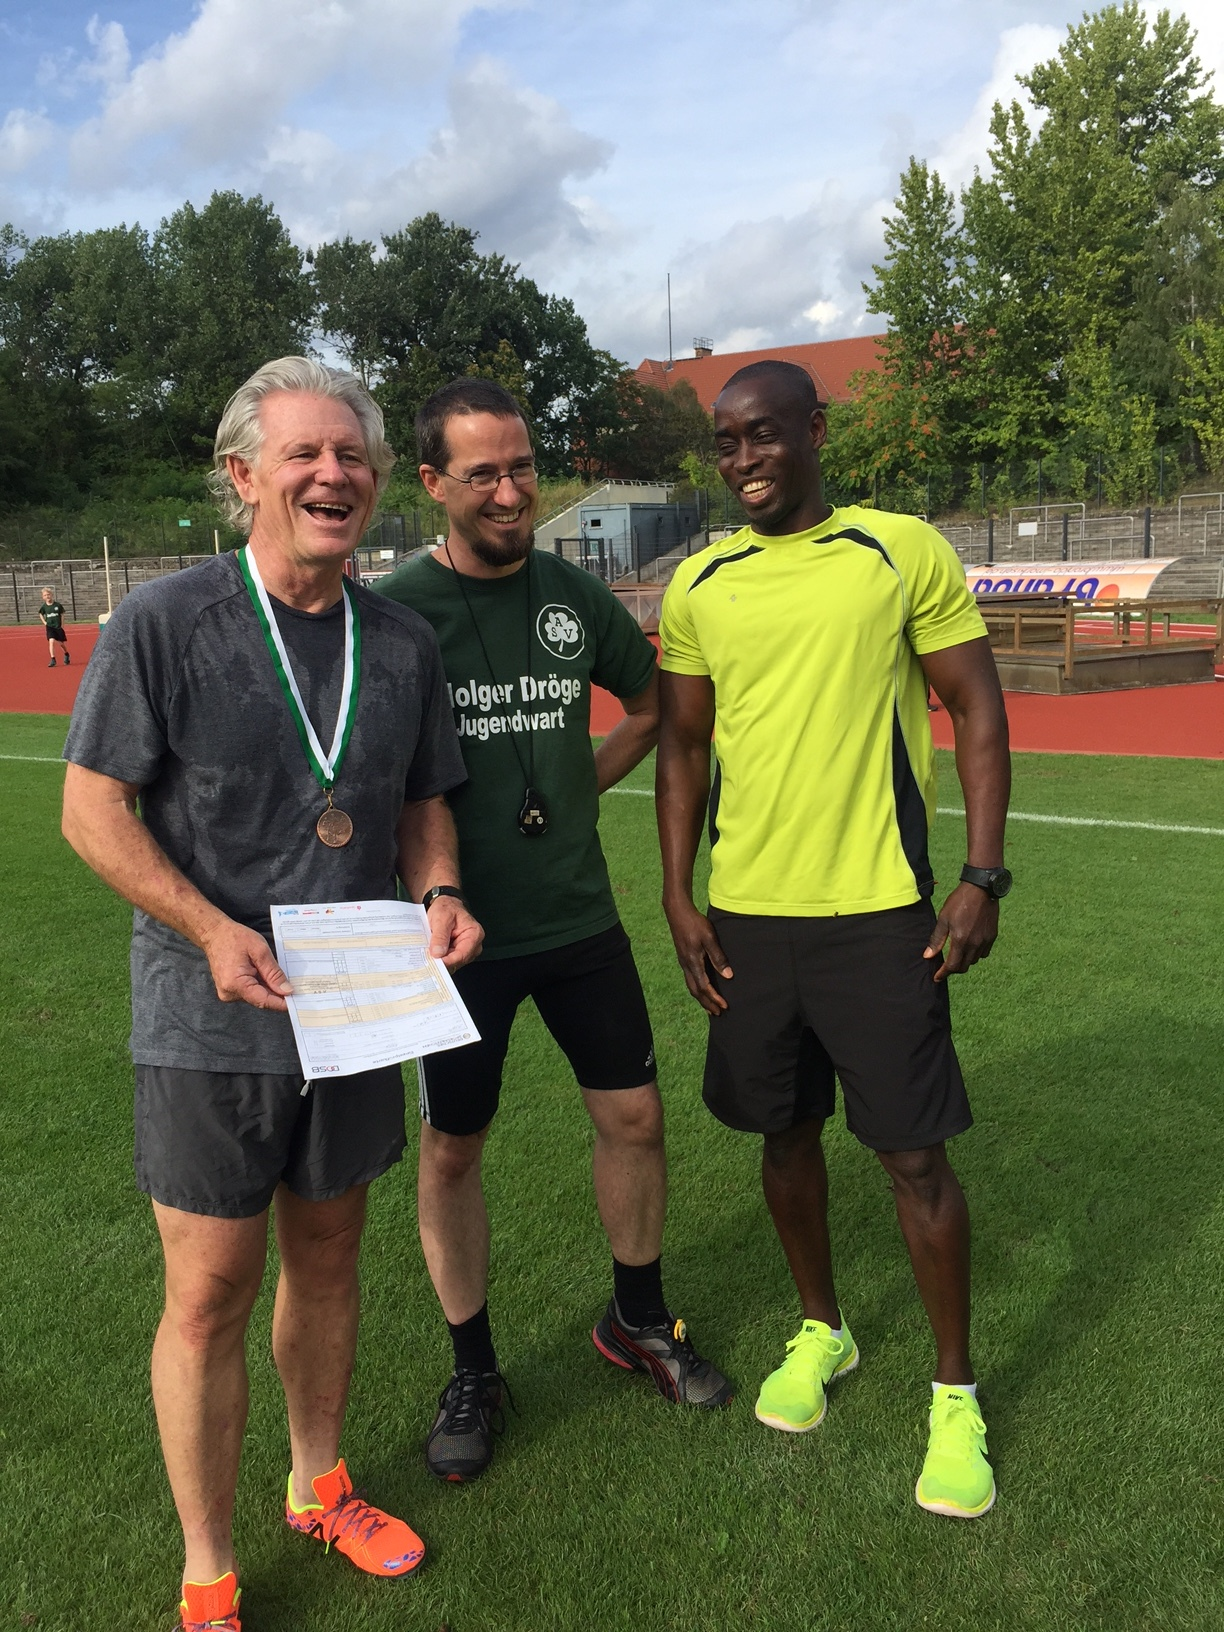 Here  Club Trainers Droege and David give me grief about the slow 100m and 200m times that were recorded forever in the ASV Berlin Athletics Club official register. Oh, and the medal was awarded to me by the club.